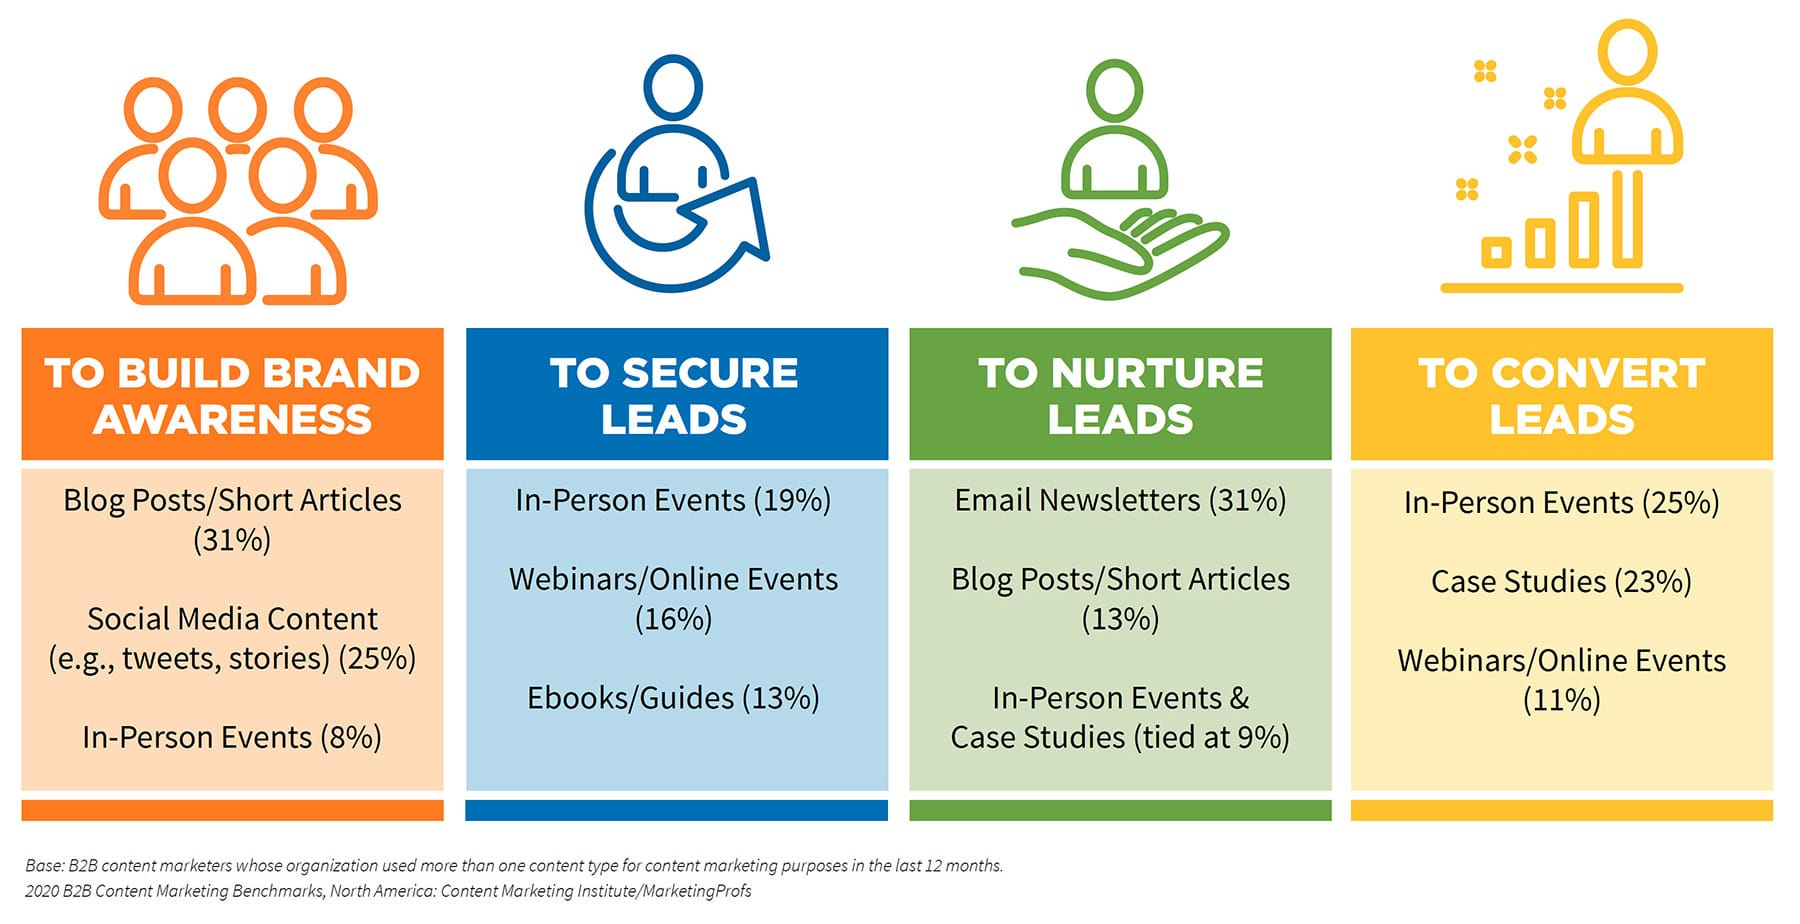 In-person events reign supreme for lead generation and conversion